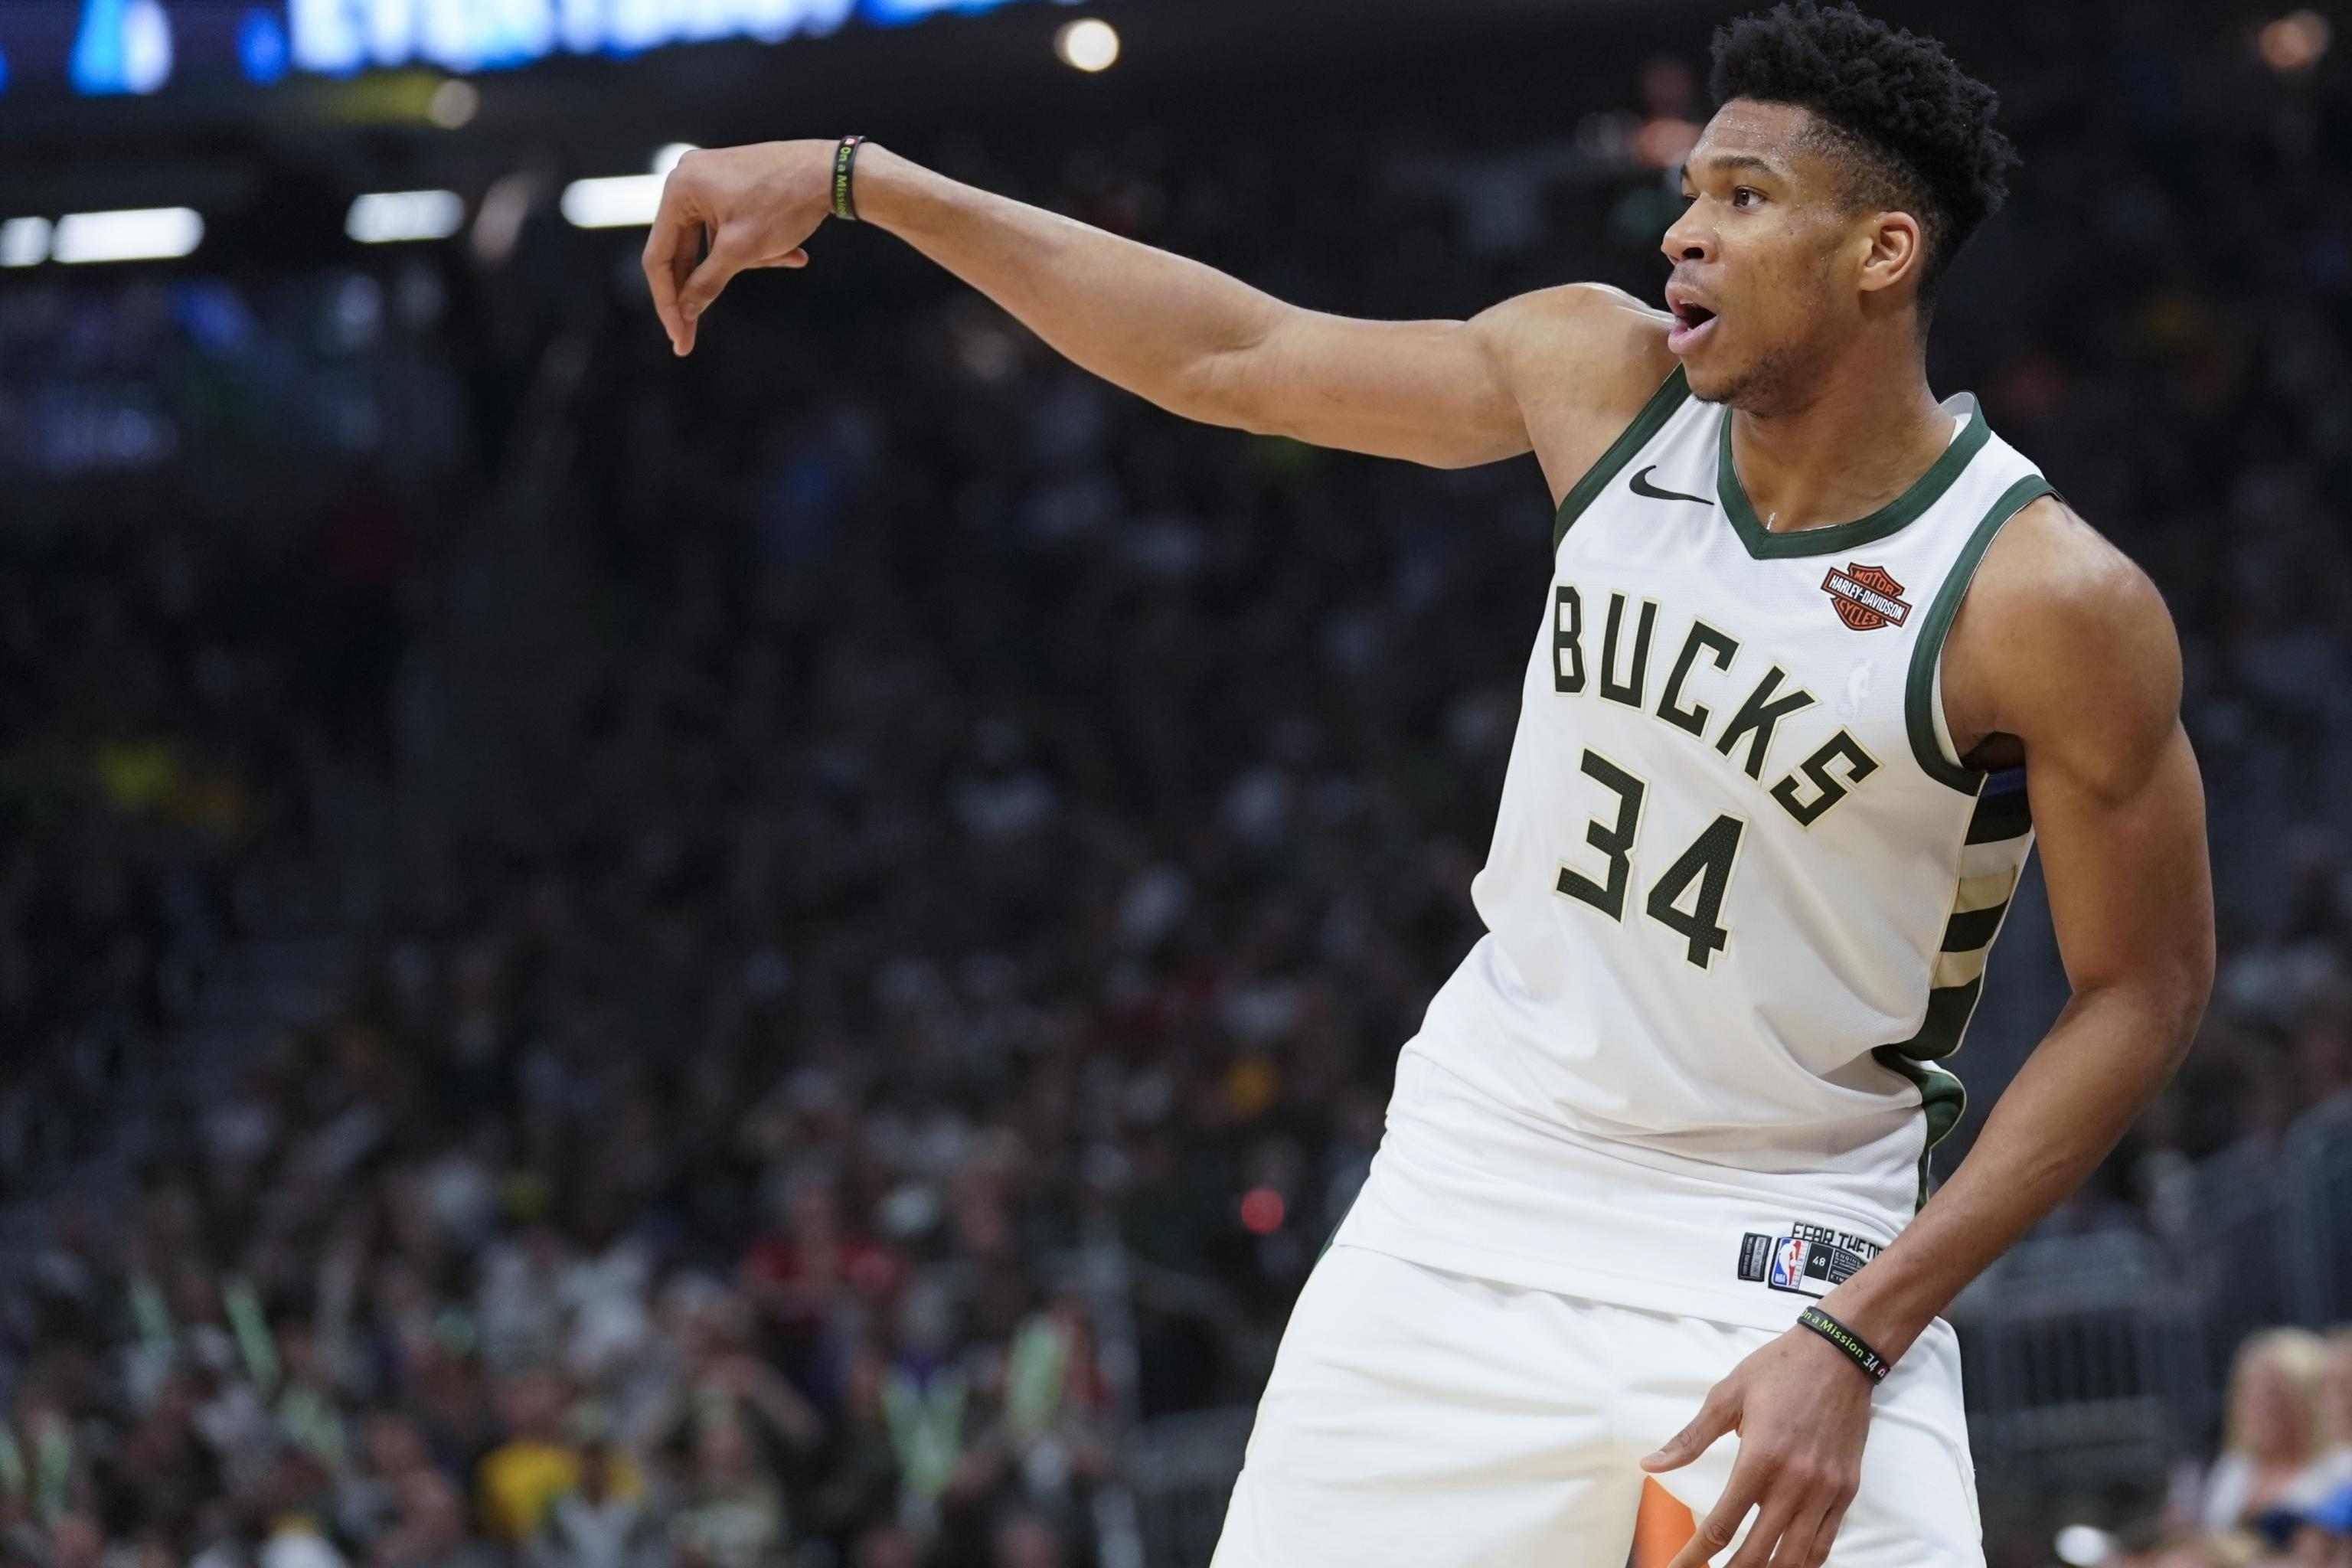 Bucks GM Says Giannis Antetokounmpo Will Be Offered Supermax ...